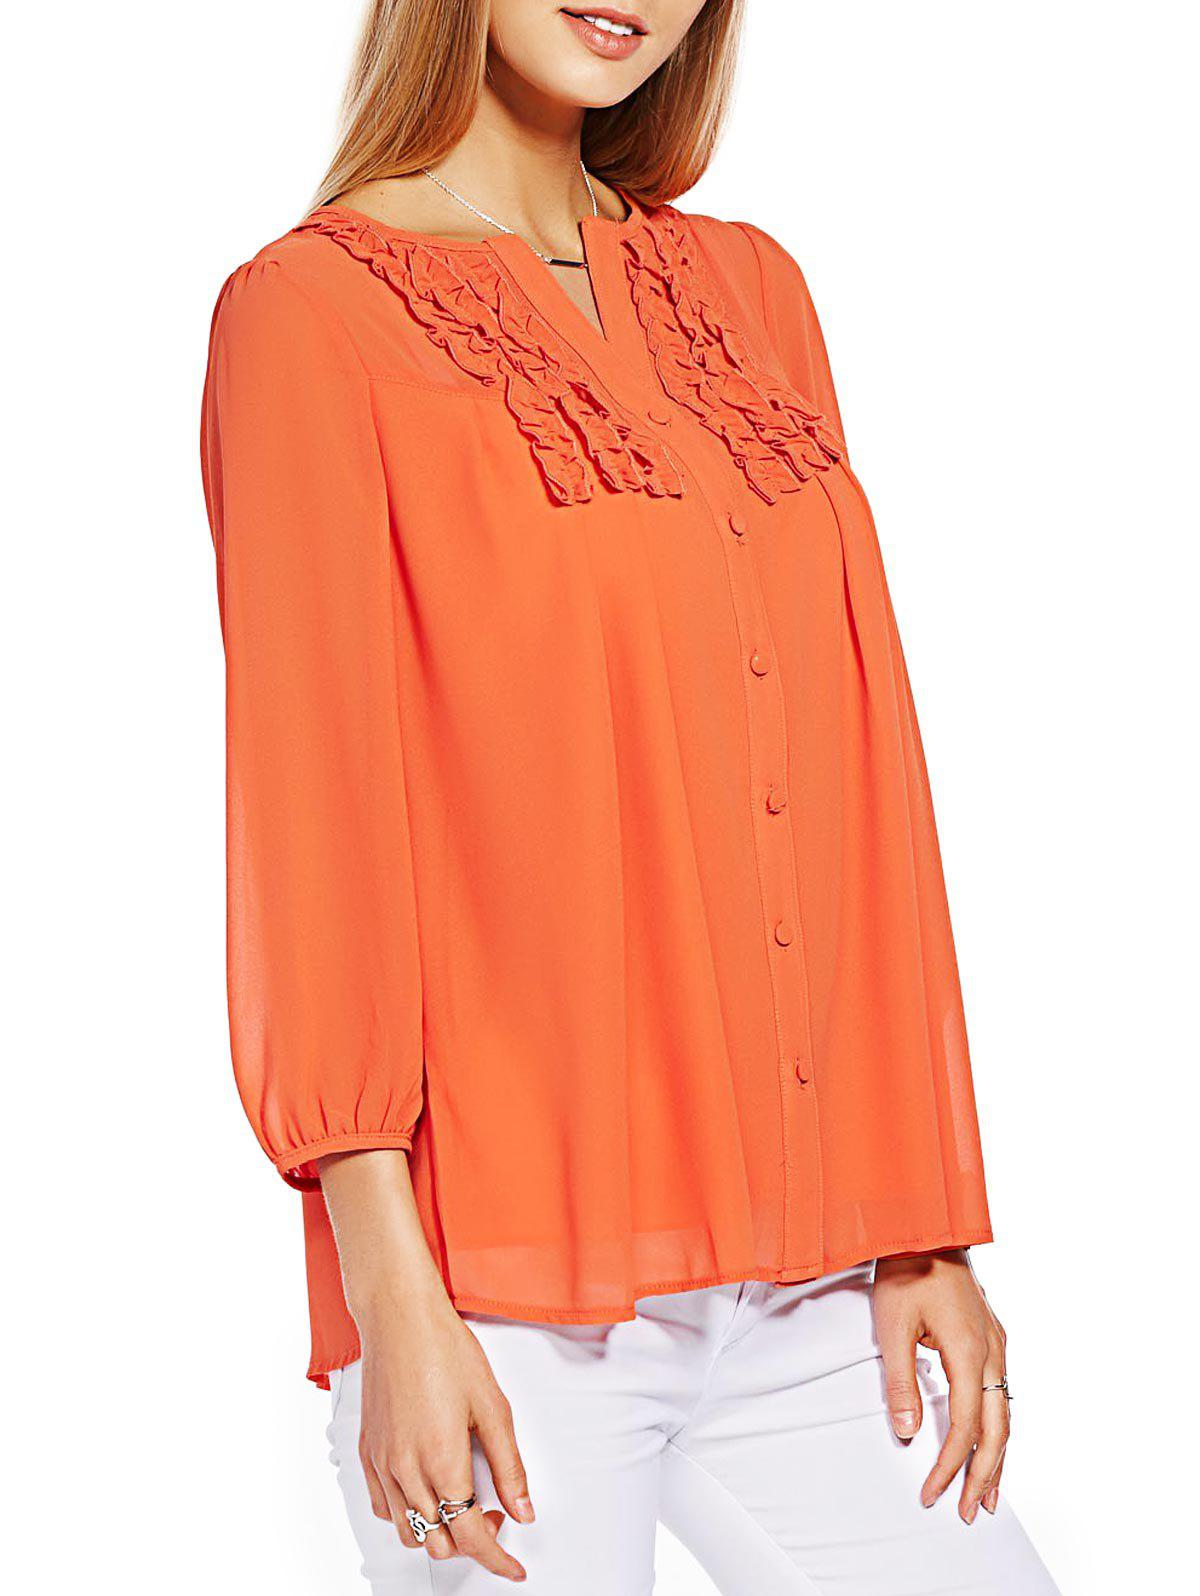 Button Ruffle Chiffon Top - ORANGE 3XL